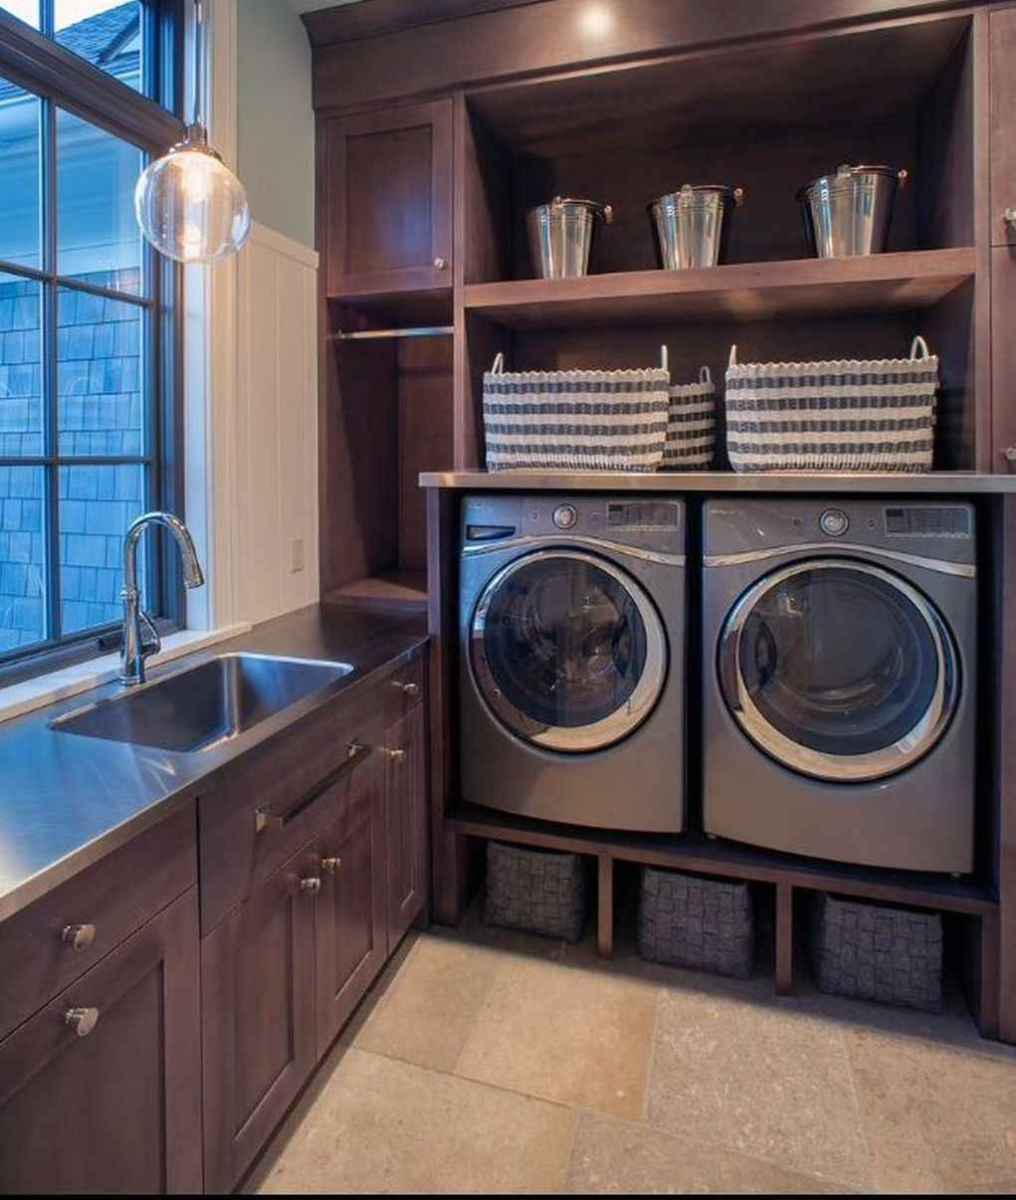 90 Awesome Laundry Room Design and Organization Ideas 01